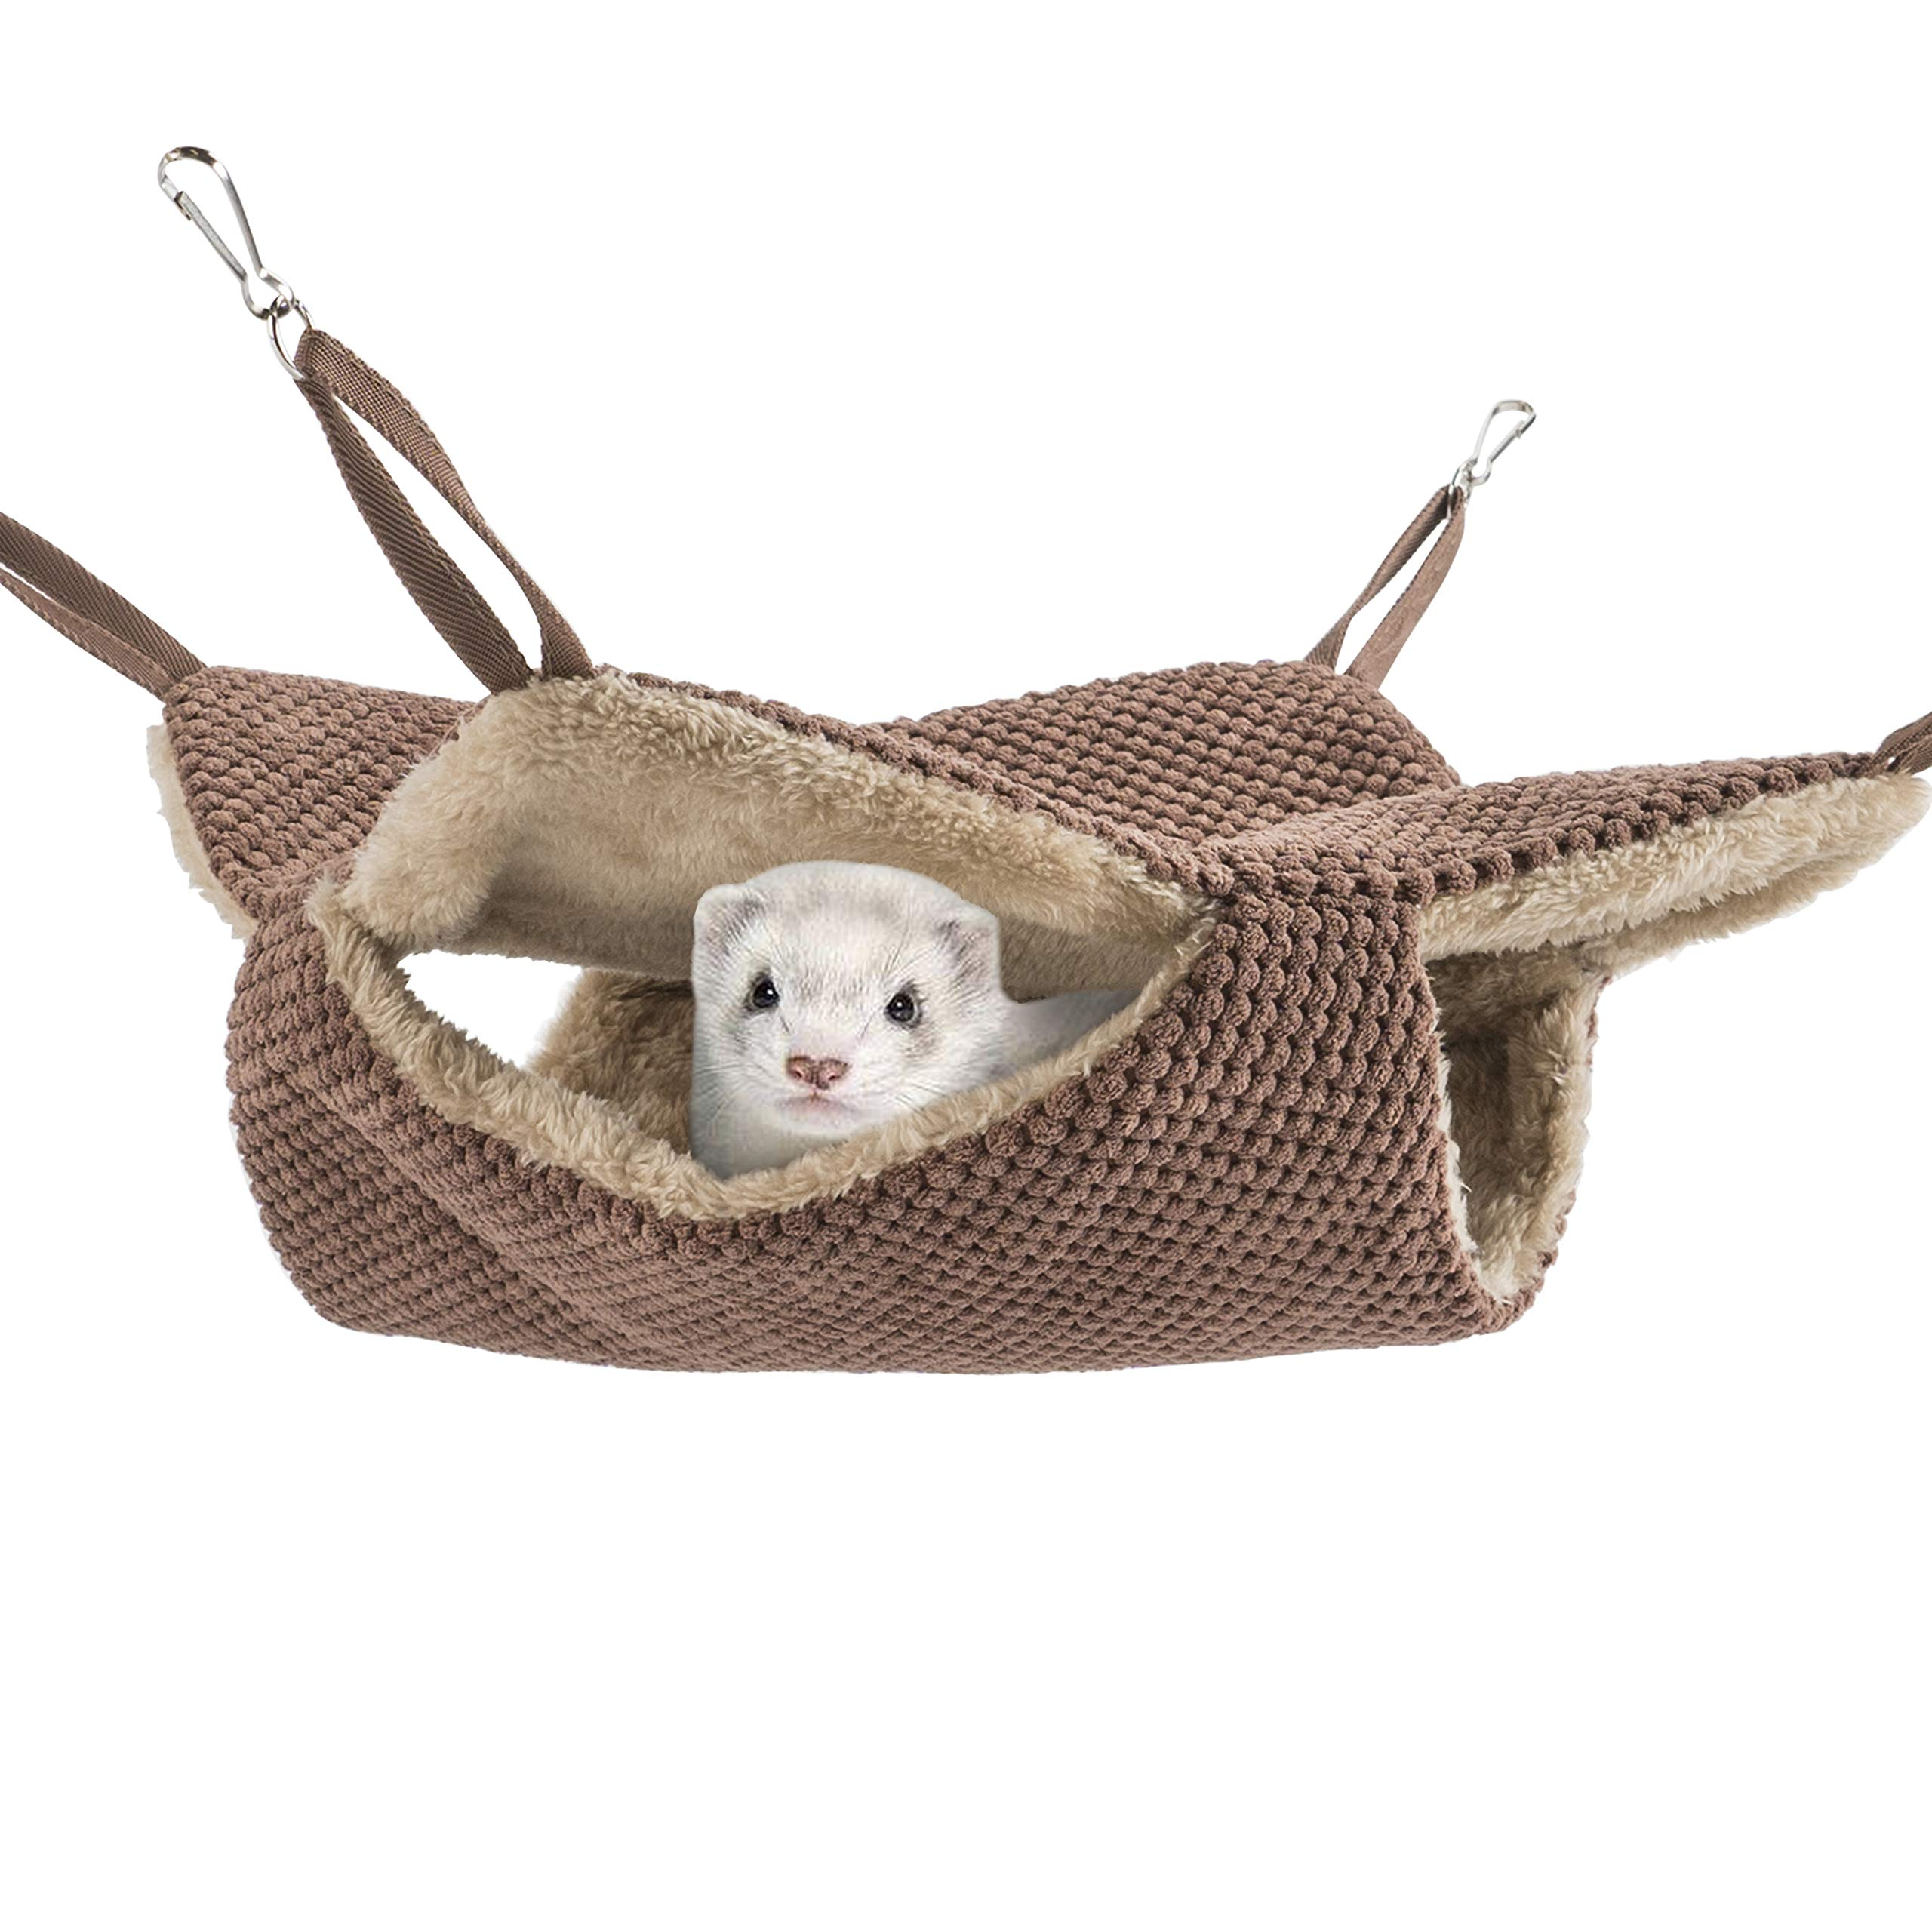 Niteangel Cage Hammock Pet Nap Bed Accessories Fit Adult Ferrets or 2 More Adult Rats (Chocolate) by Niteangel